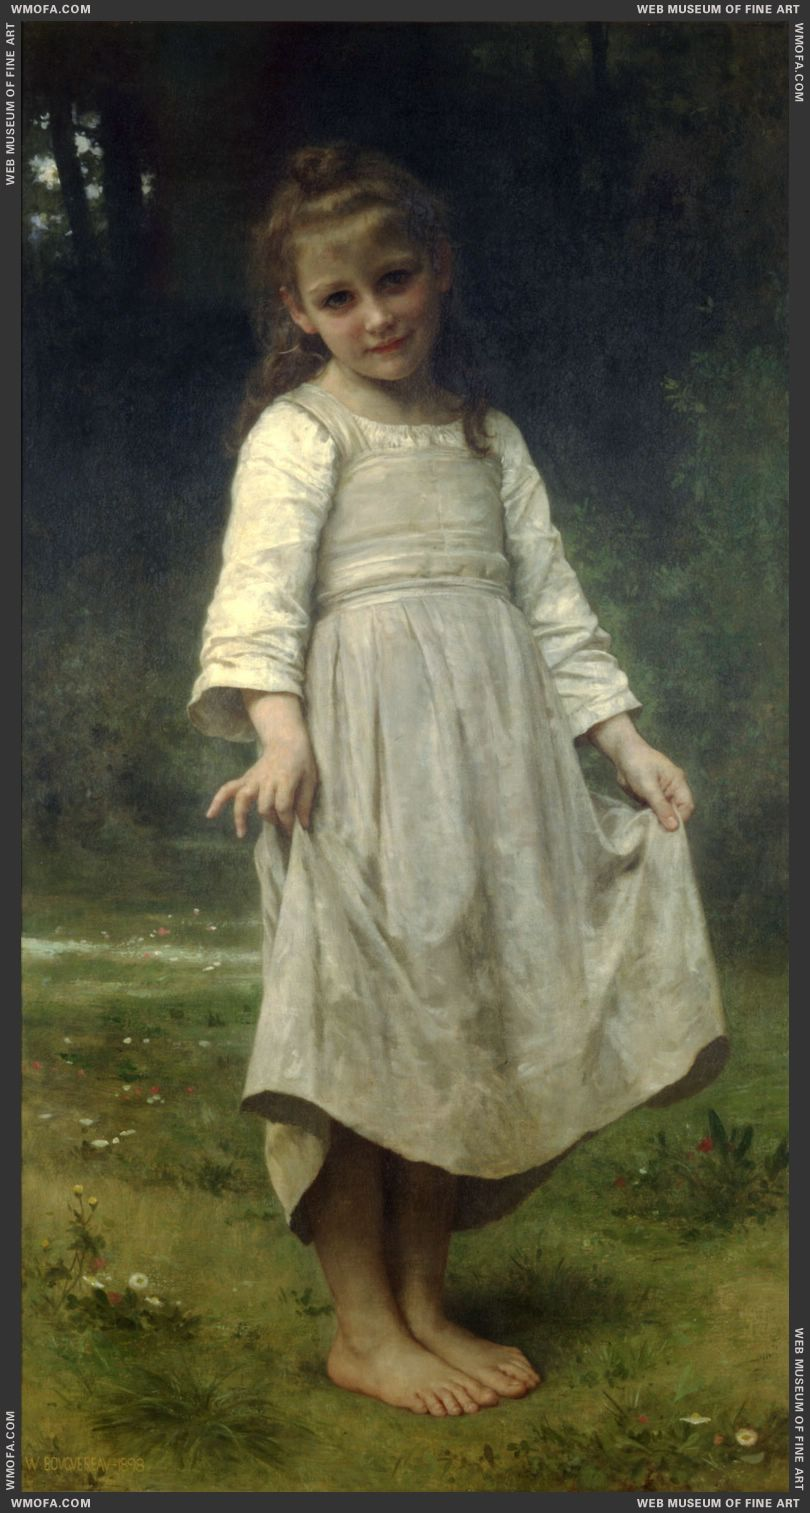 La Reverence - The Curtsey 1898 by Bouguereau, William